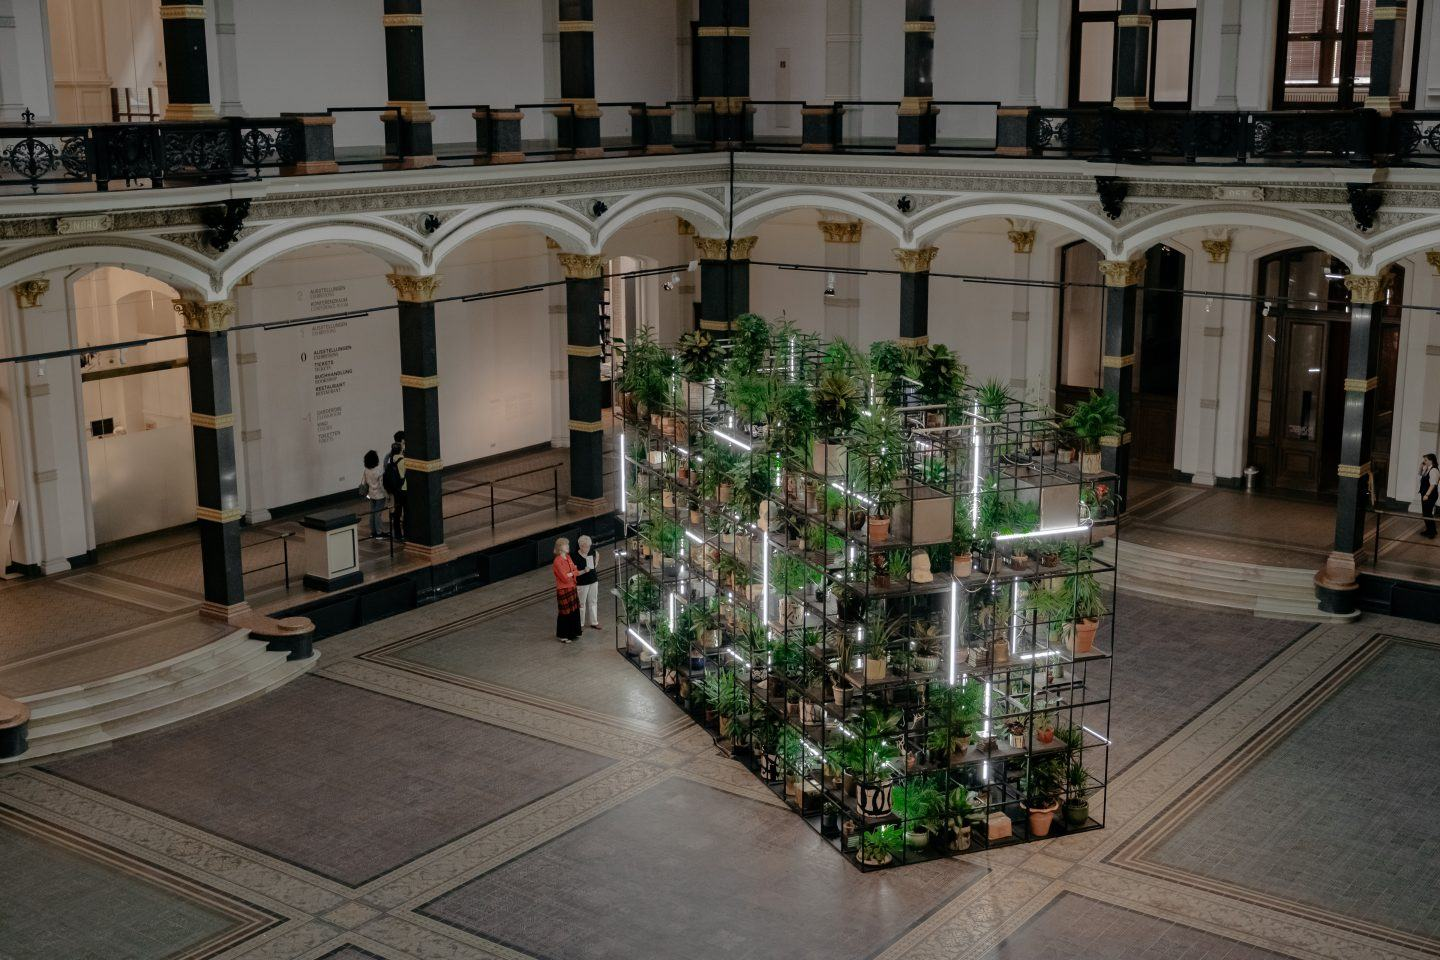 How Does Your Garden Grow? The Latest Exhibition At Gropius Bau In Berlin Explores The Myriad Metaphorical Ways - IGNANT